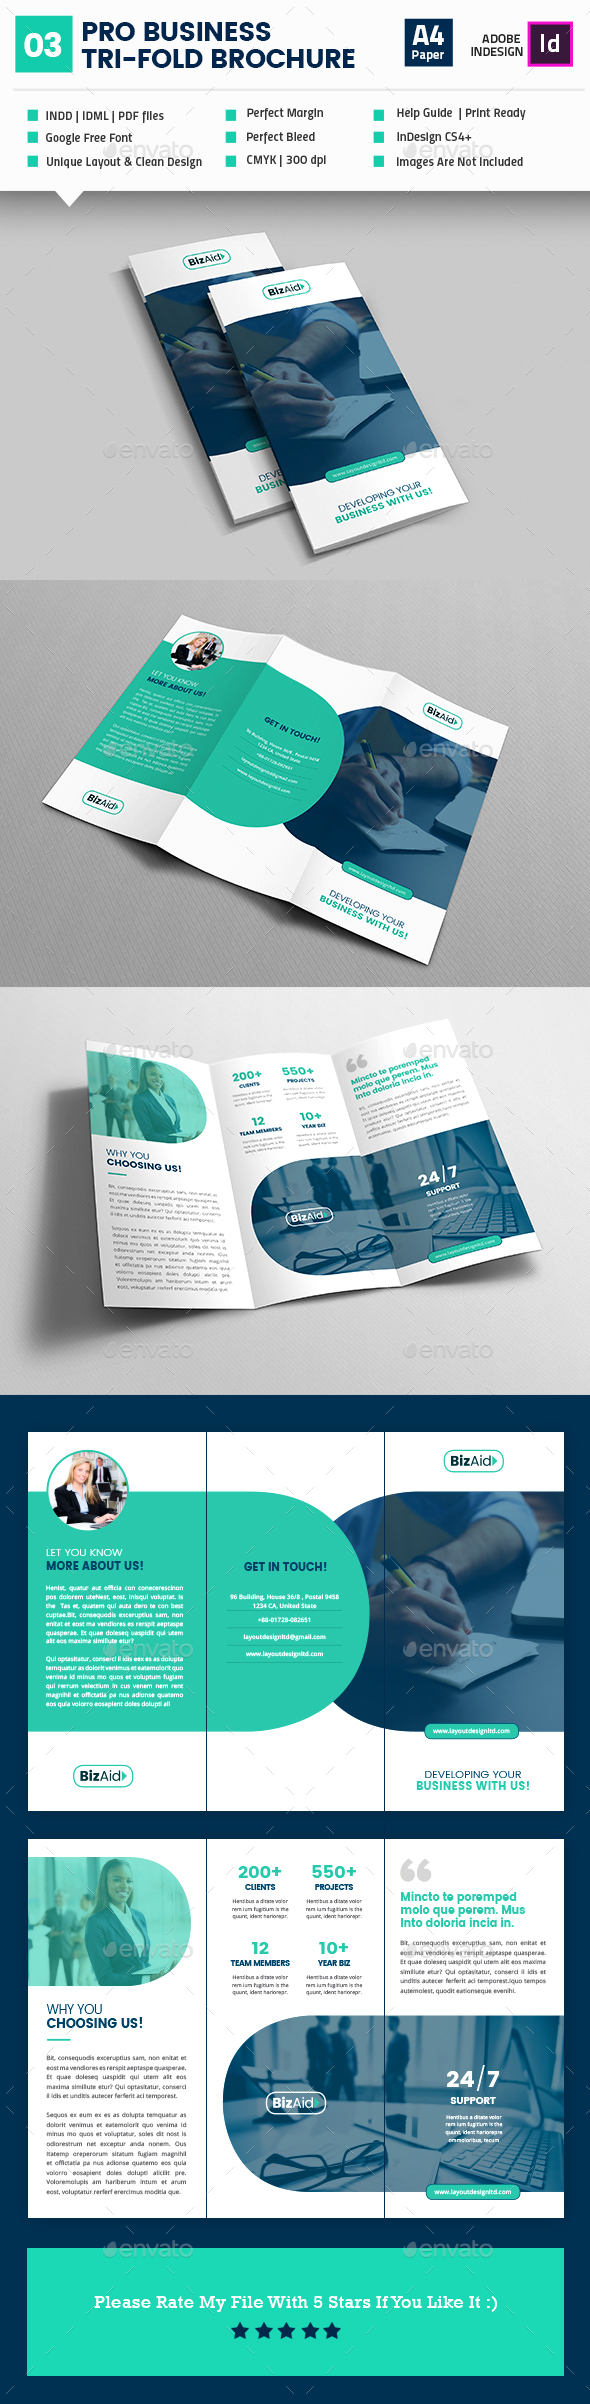 Pro Business TriFold Brochure Template InDesign INDD Brochure - Trifold brochure template indesign